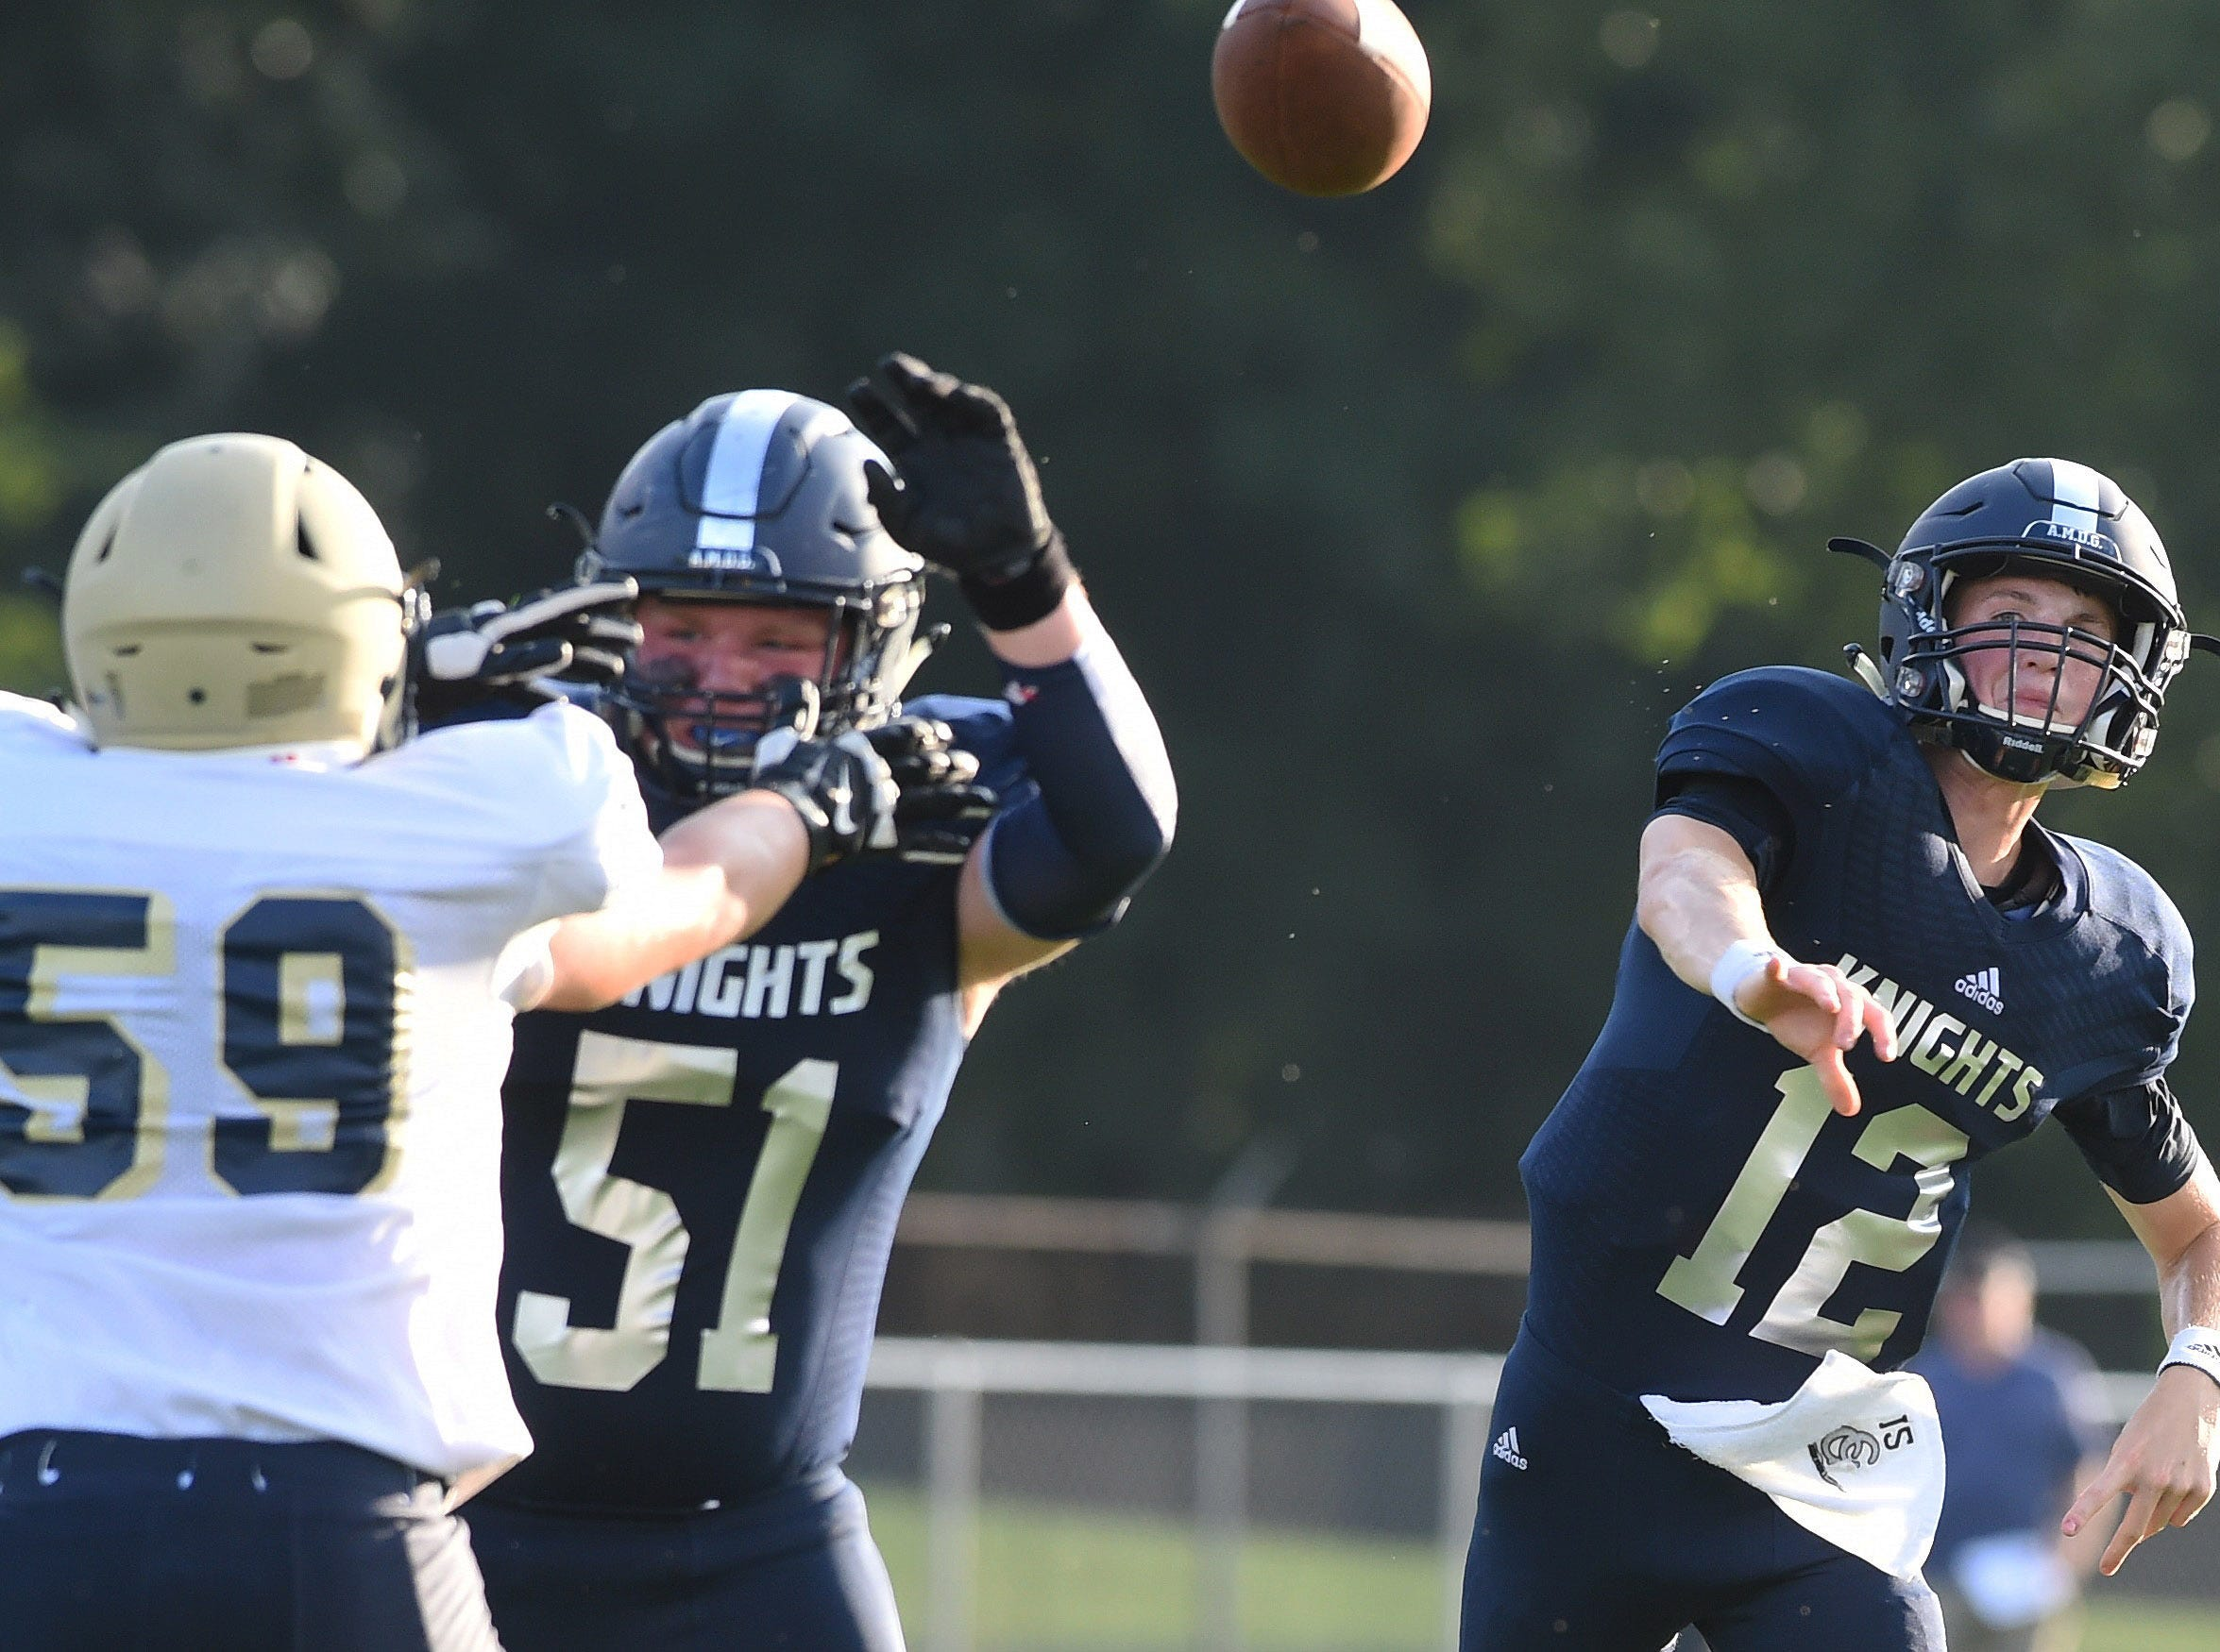 Central Catholic quarterback Wes Dulin has time to throw thanks to the blocking of left guard Noah Eversman (51).